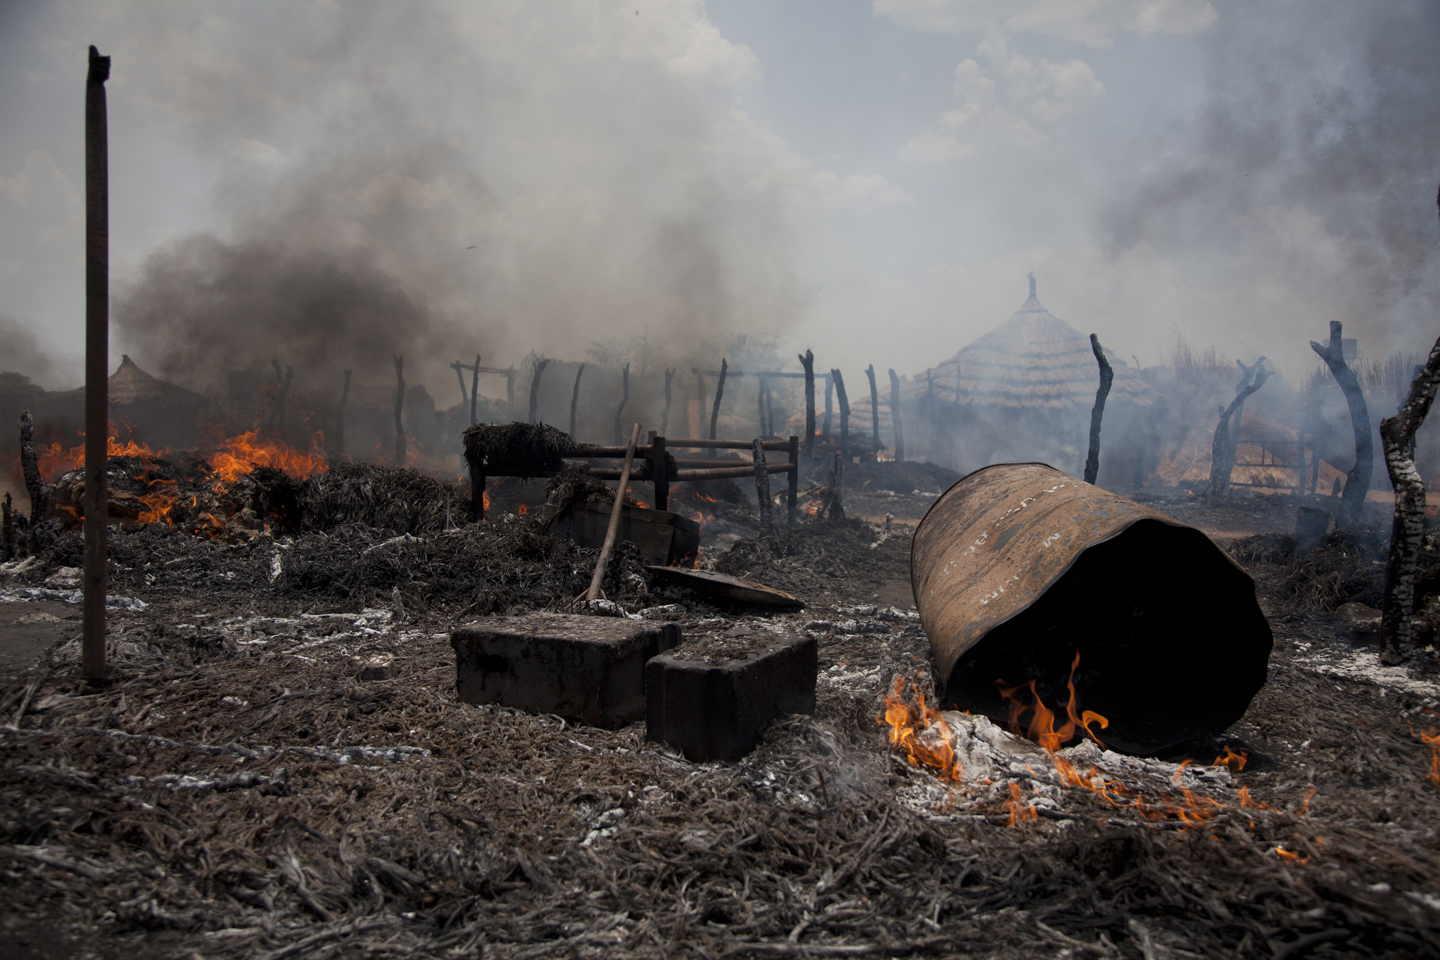 Houses went up in flames after being hit by a bomb in Bentiu, South Sudan, on April 14th, 2012. The Sudan Armed Forces (SAF) dropped six bombs on the edge of Bentiu, killing four civilians and one SPLA soldier.